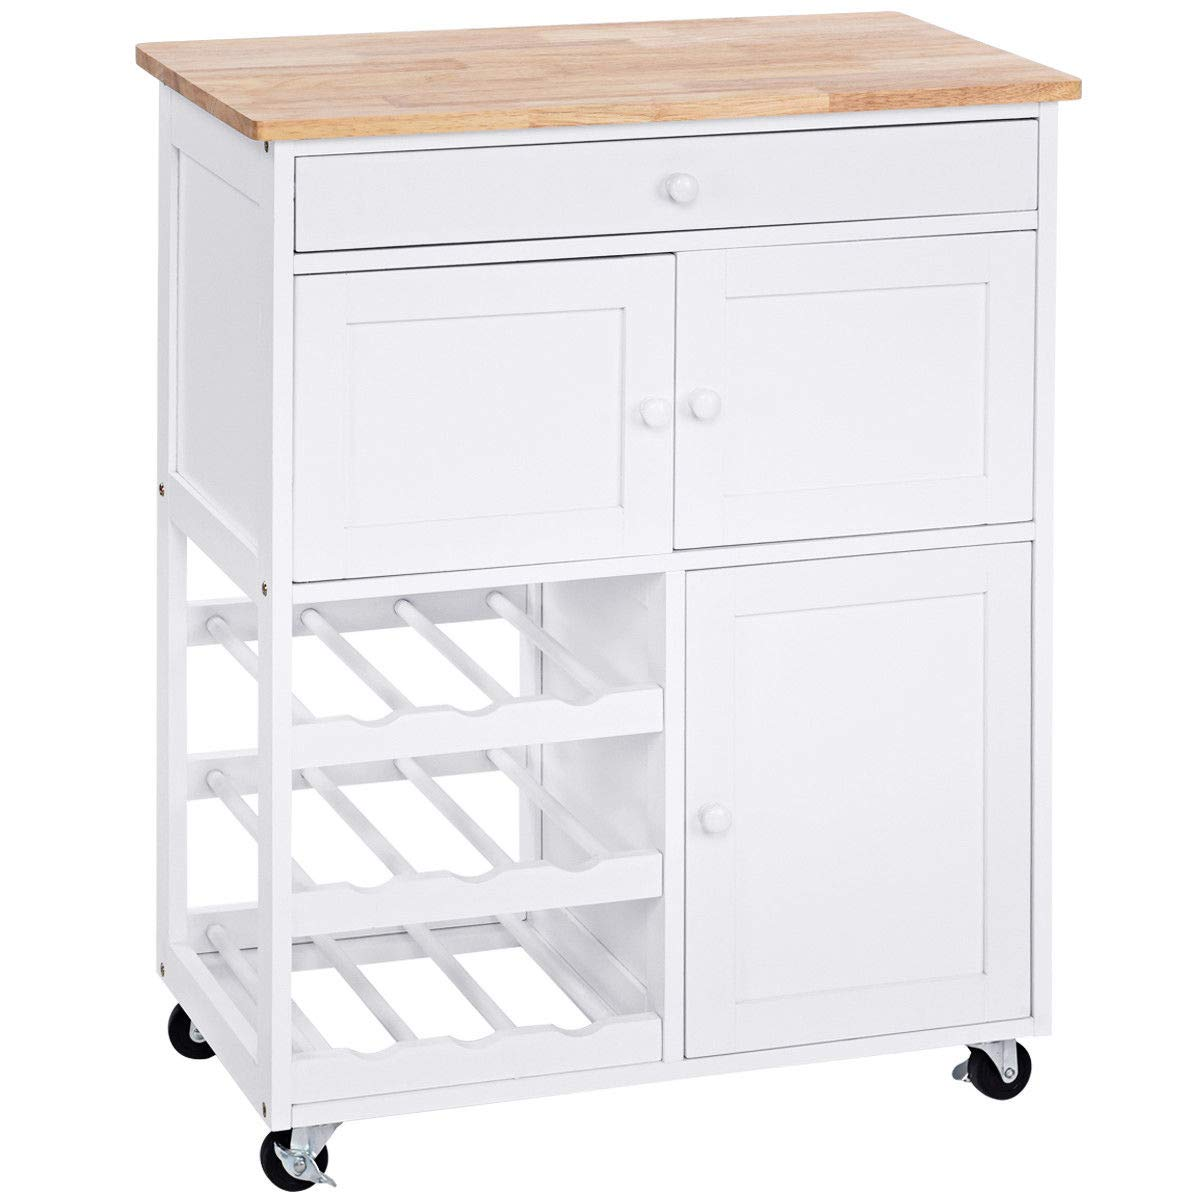 "NanaPluz 26.4"" Rolling Kitchen Cart Storage Cabinet Island Trolley Mobility Shelf Table Serving w/Wine Rack & Drawer with Ebook"